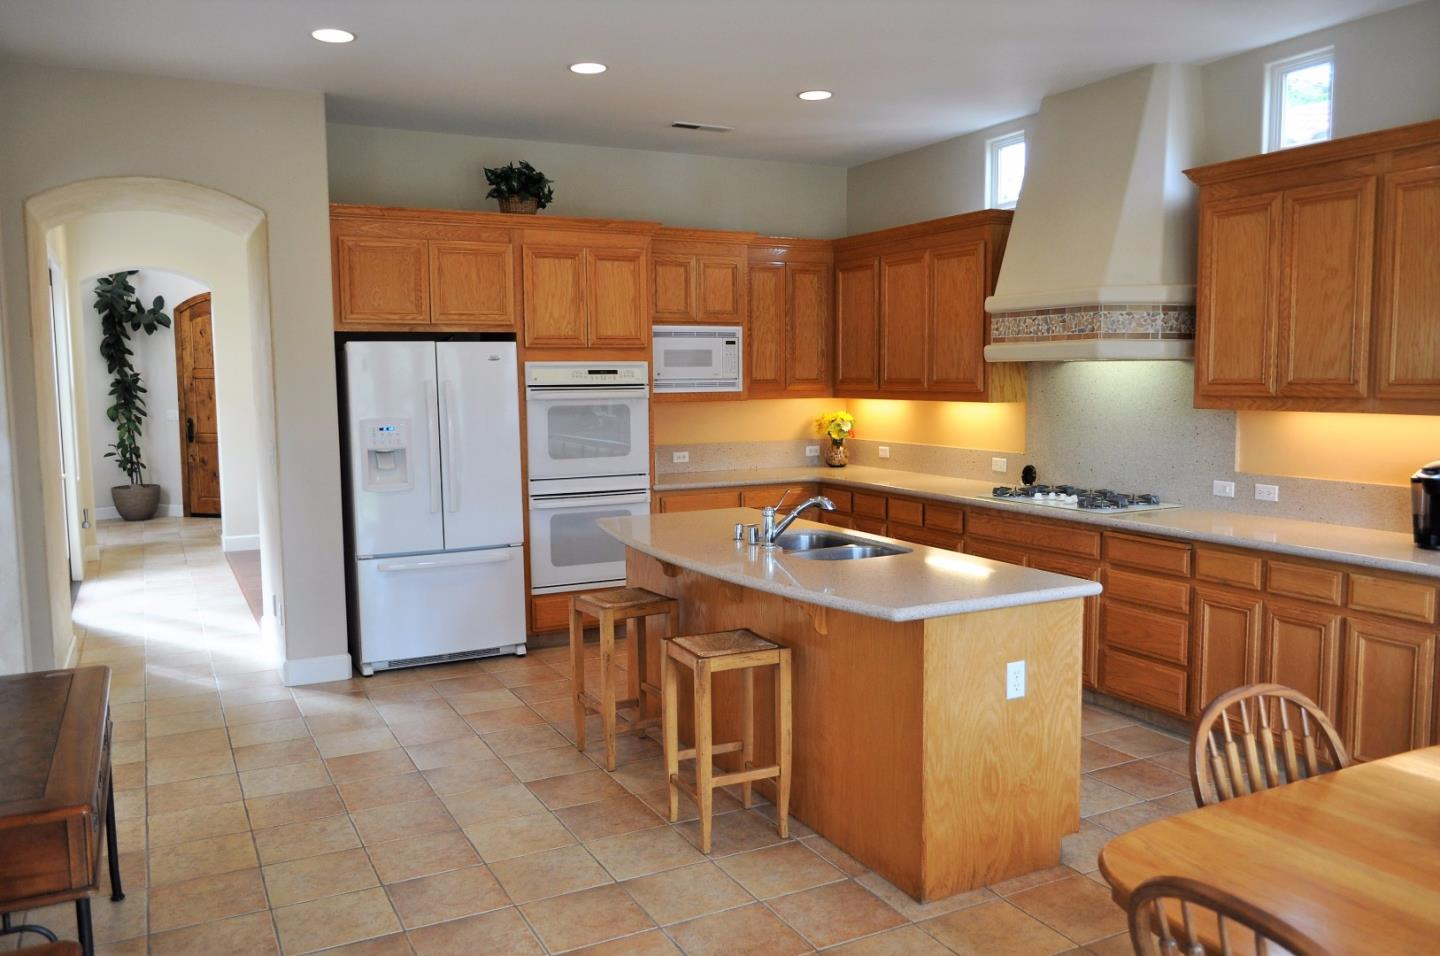 Additional photo for property listing at 2610 Club Drive  Gilroy, California 95020 Estados Unidos